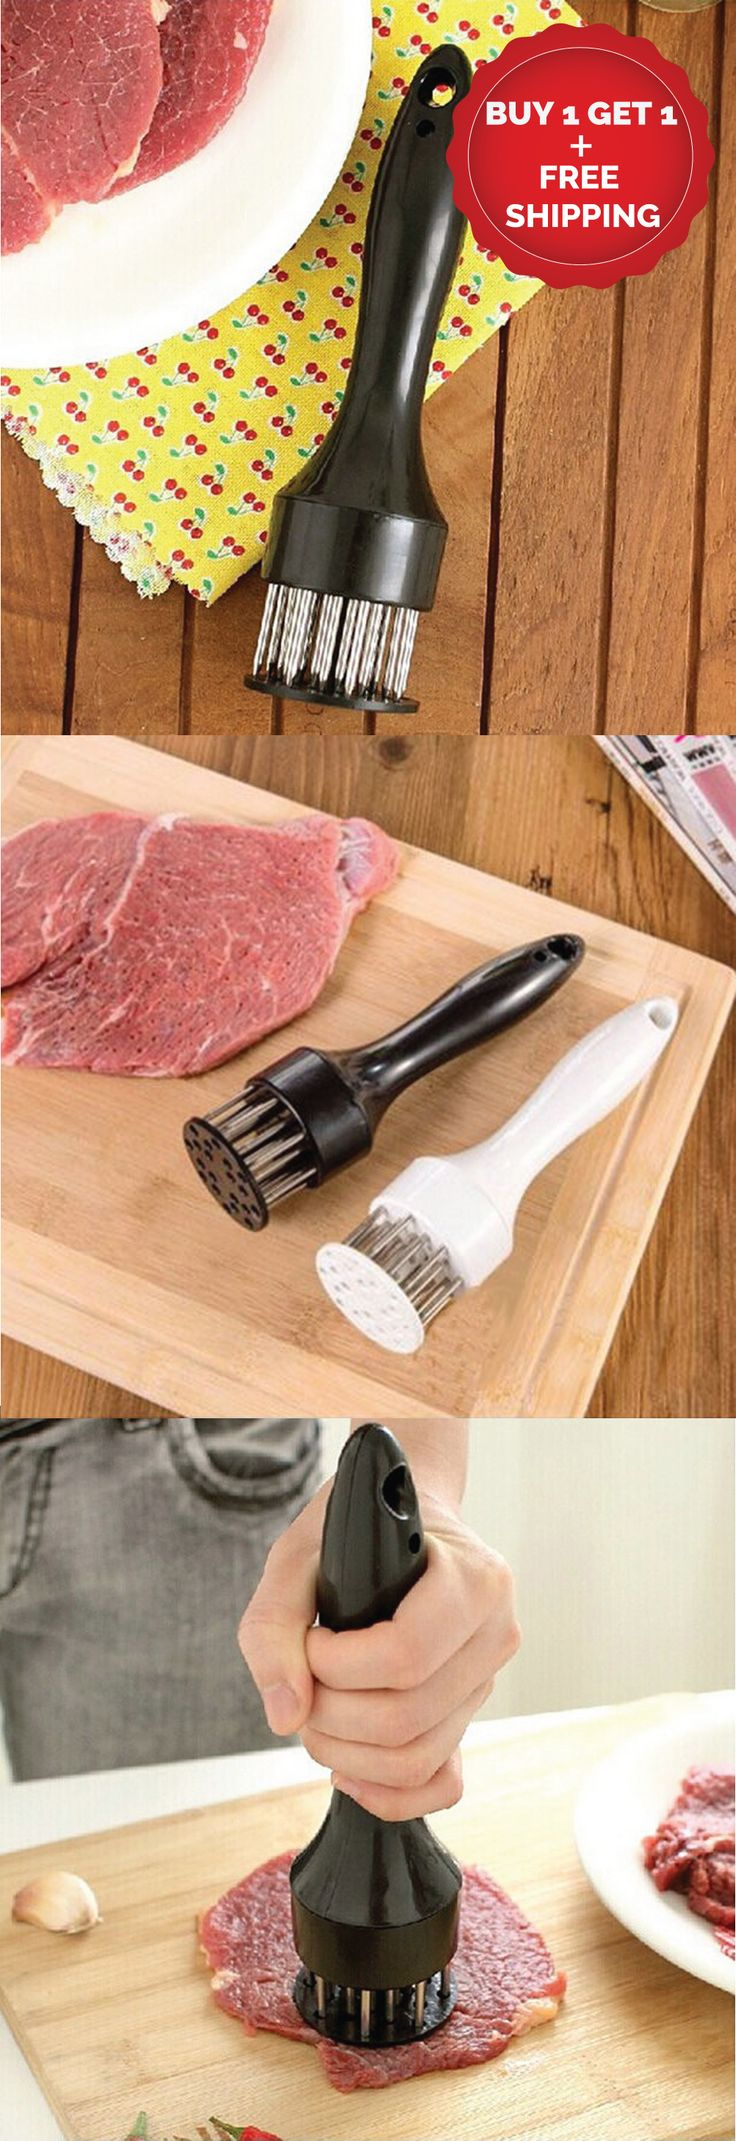 """Stainless Steel Needle Meat Tenderizer (BUY1-GET1) *Made of ABS material, safe and non-toxic. *It has the advantages of multi-purpose, simple operation, convenient cleaning, reliable quality. *High efficiency, and do not hurt your hands.  *It is a good helper when you barbecue with your friends or families. *Reduce cooking time by up to 40% by creating """"heat channels"""". *More even cooking; reduced shrinkage. *Easy to clean"""